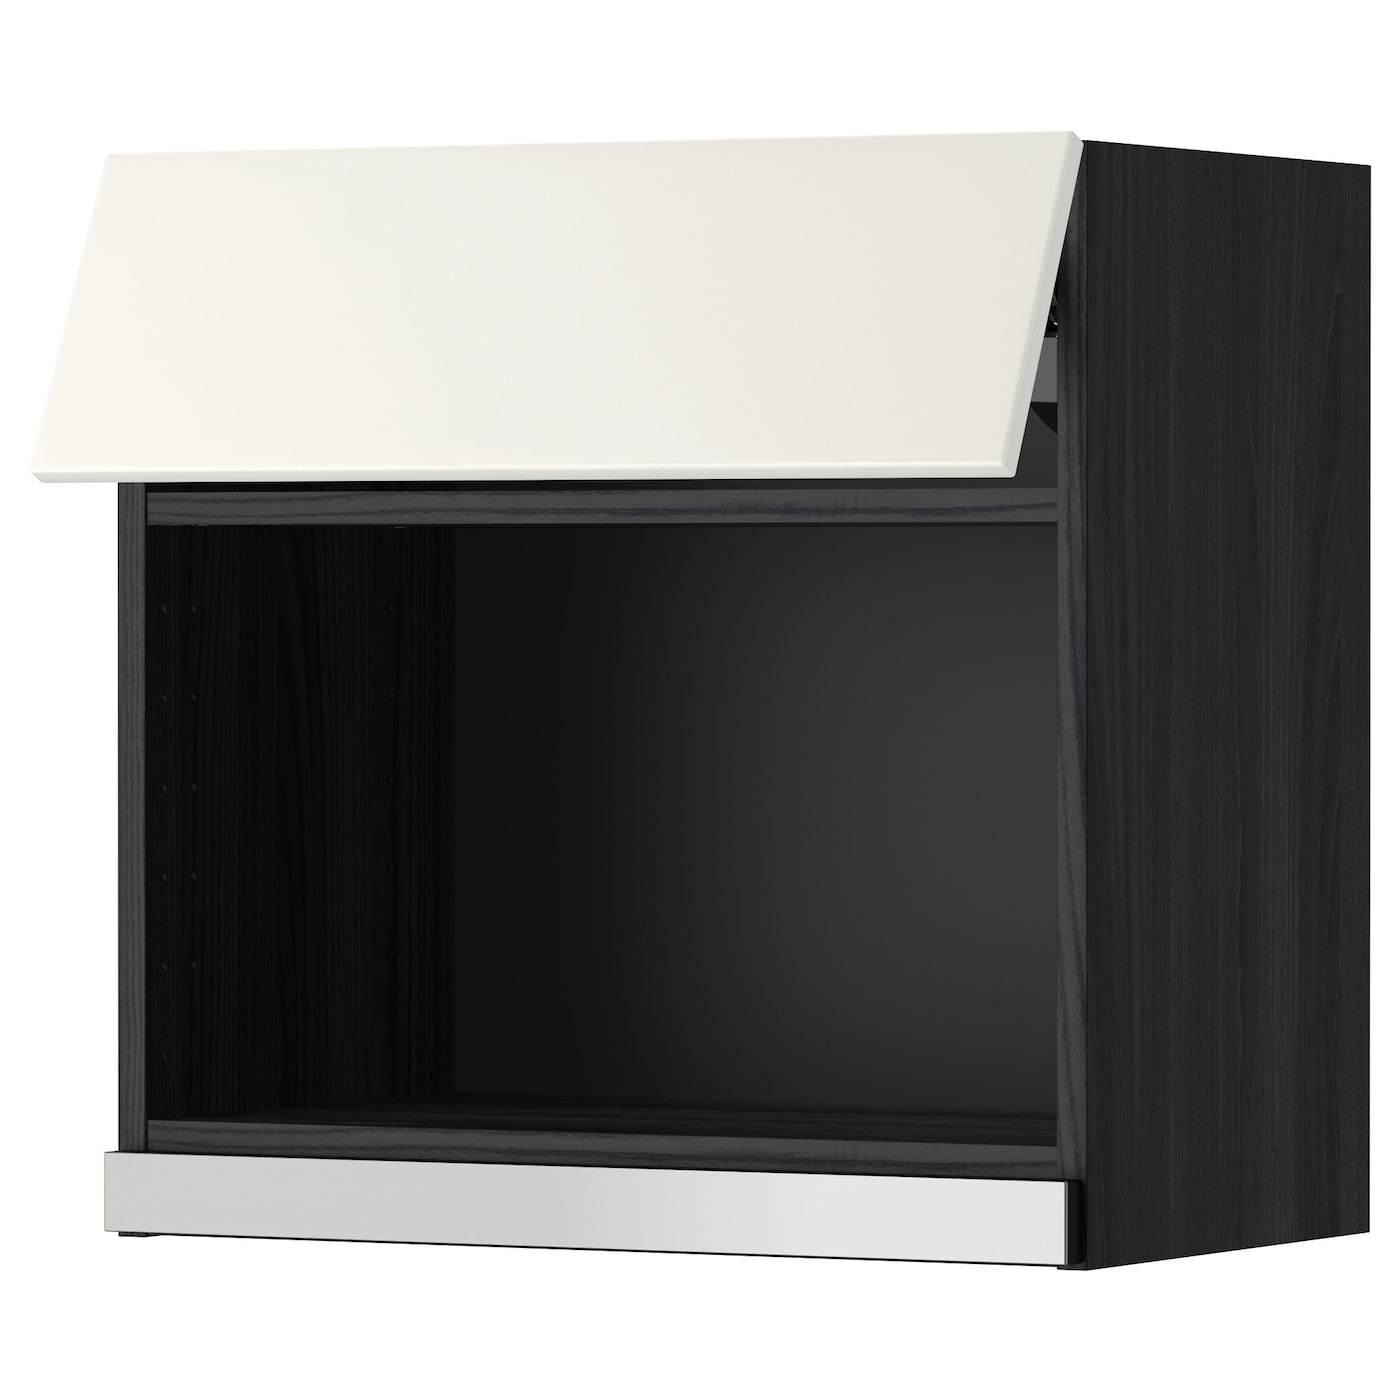 metod bovenkast voor magnetron zwart veddinge wit 60 x 60 cm ikea. Black Bedroom Furniture Sets. Home Design Ideas